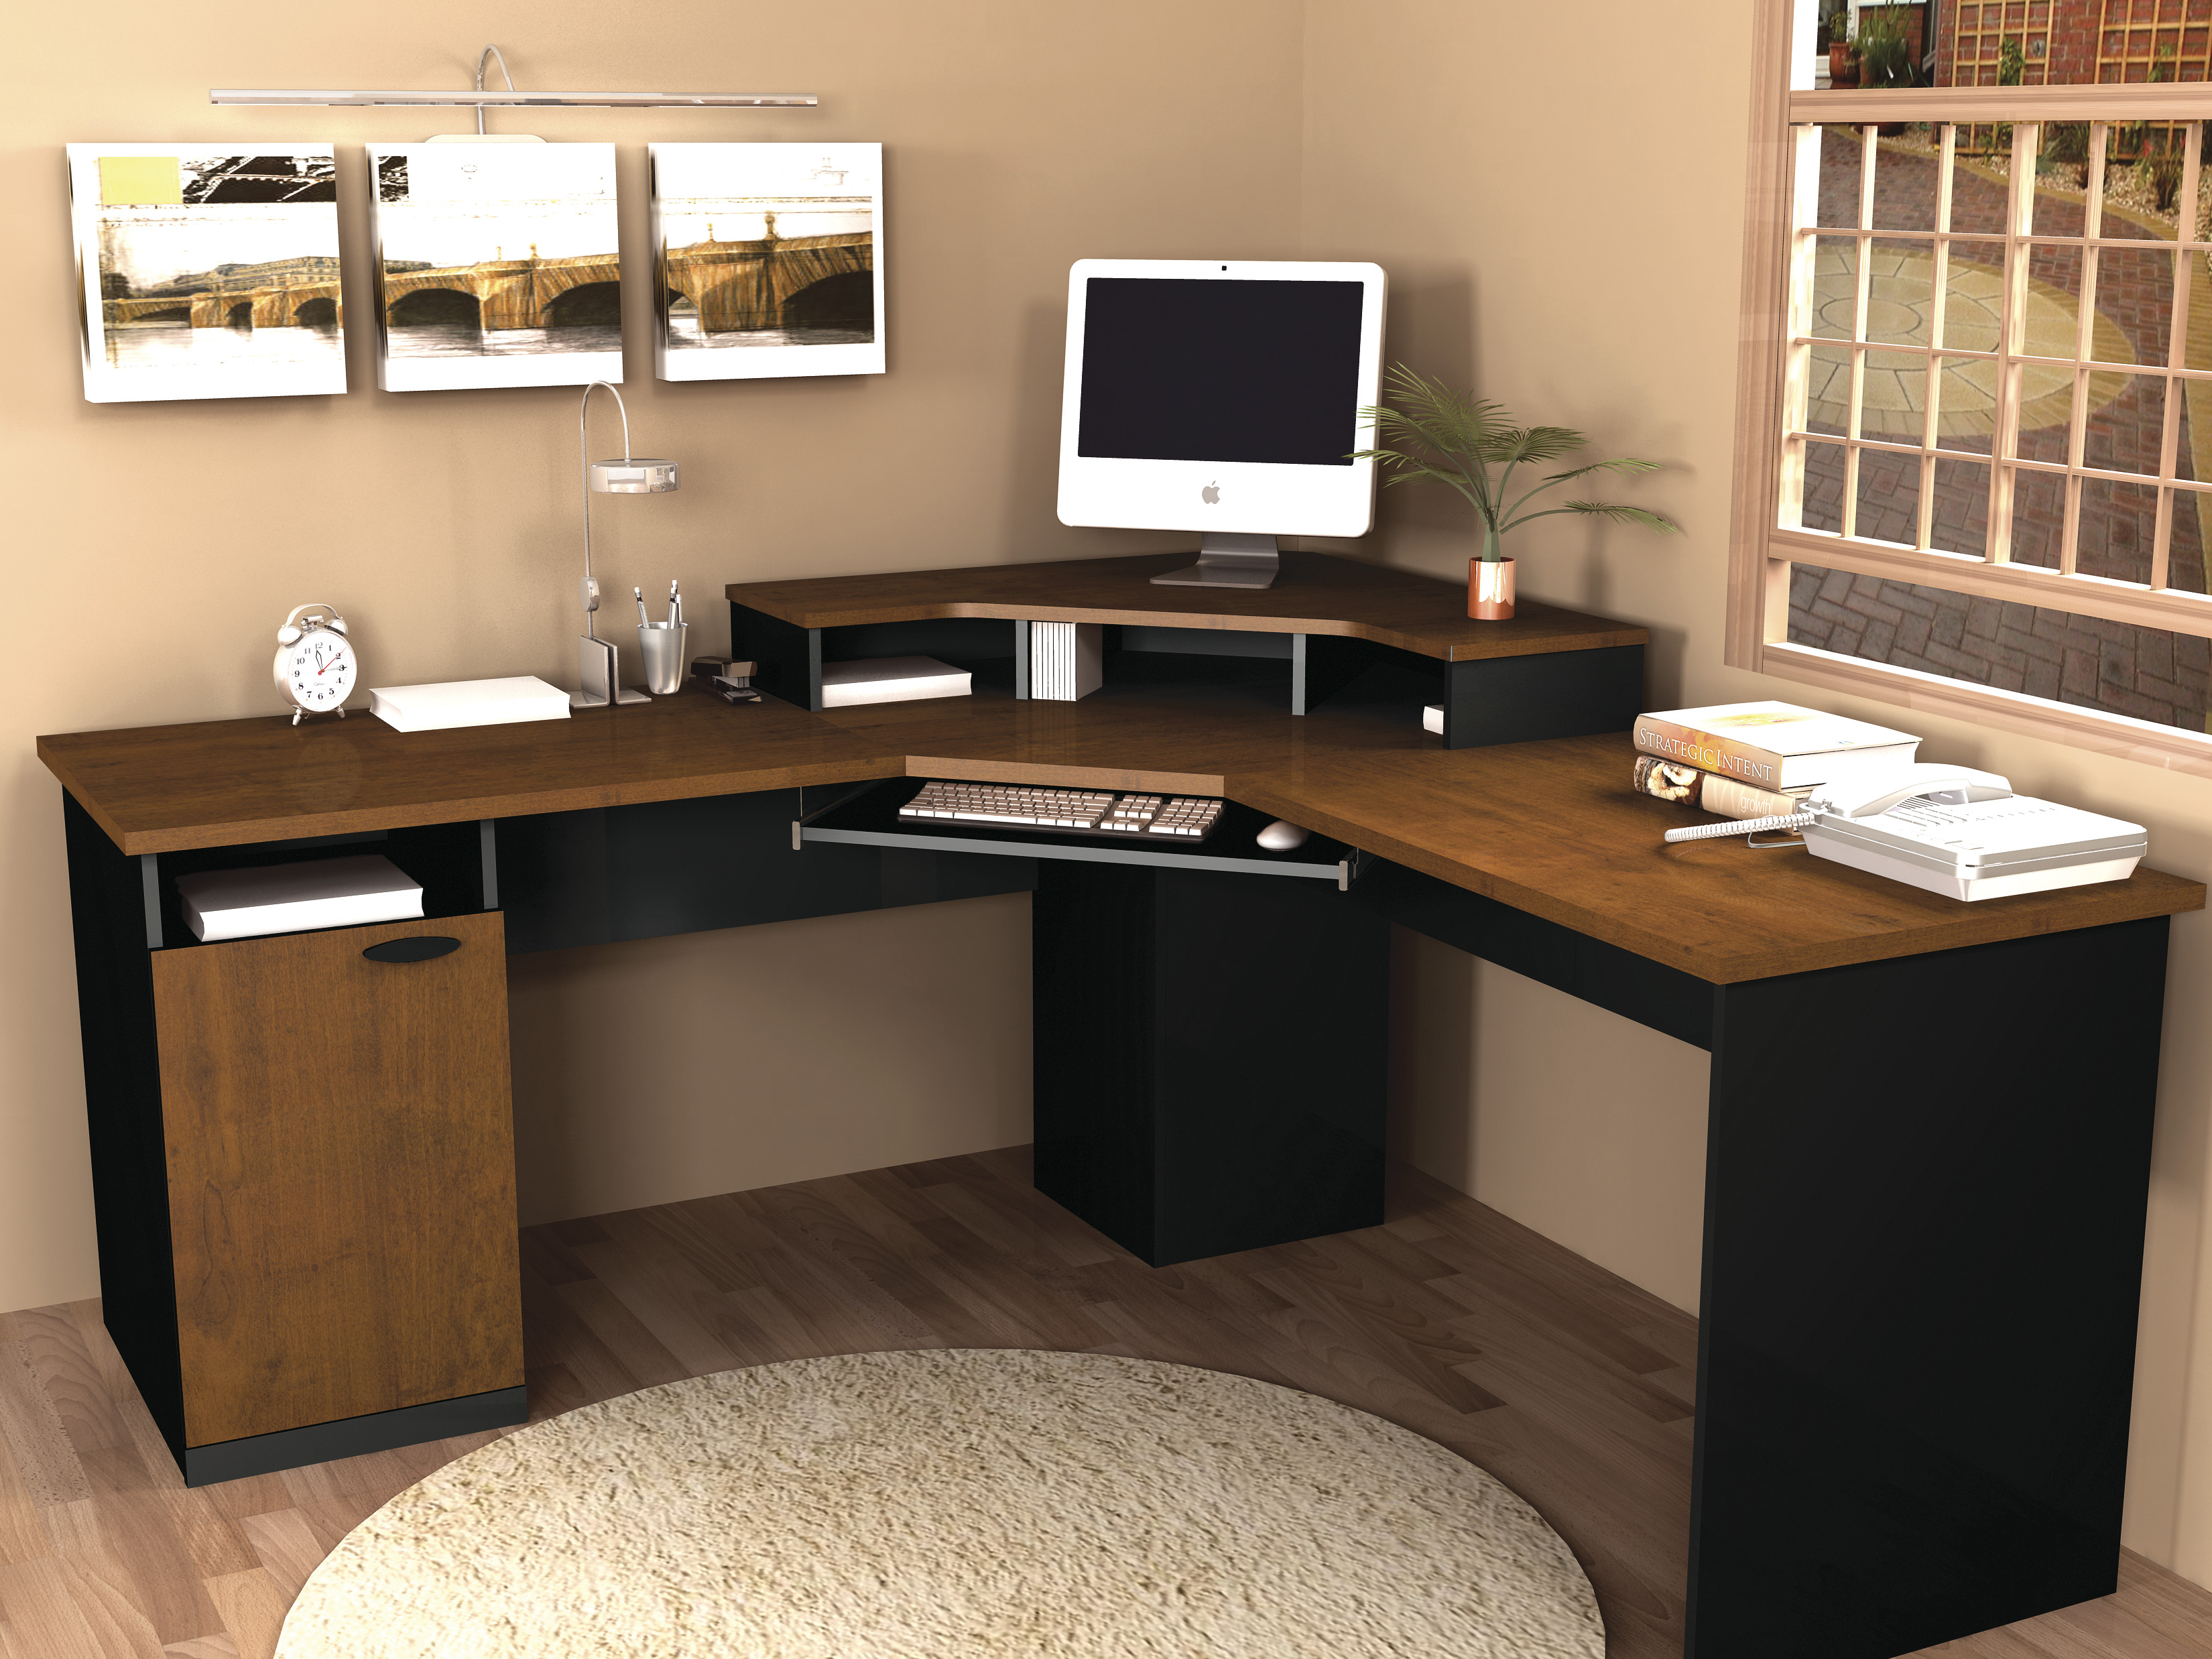 Computer desk office Modern Top 10 Best Computer Desk Of 2019 Top 10 Geeks ᐅ Best Computer Desk Reviews Compare Now